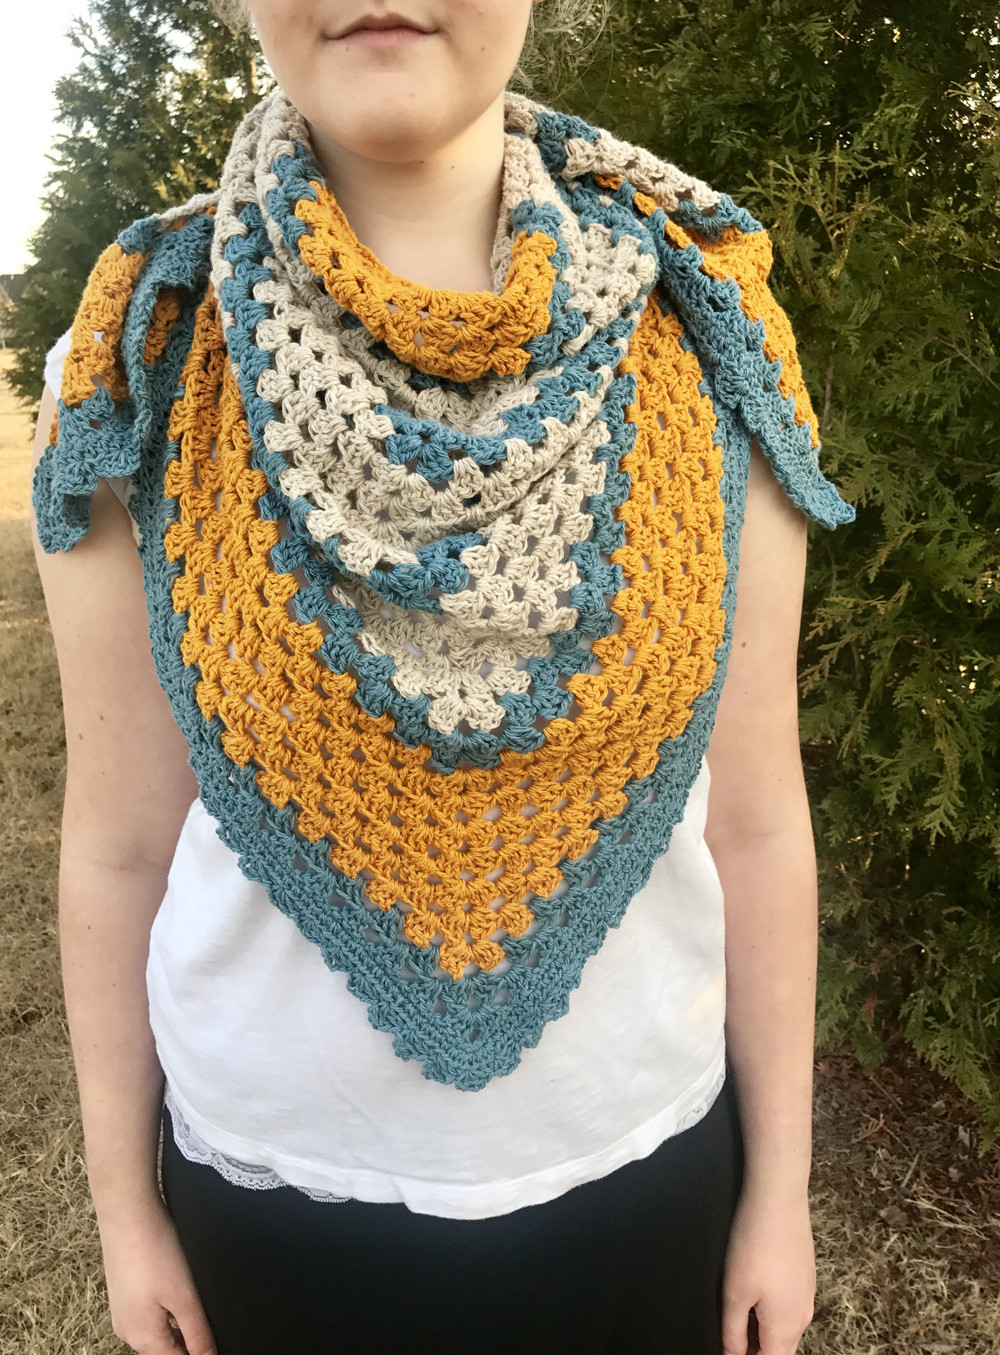 Fresh A Sunny Day Triangle Shawl Crochet Pattern by Little Crochet Triangle Scarf Of New 50 Images Crochet Triangle Scarf